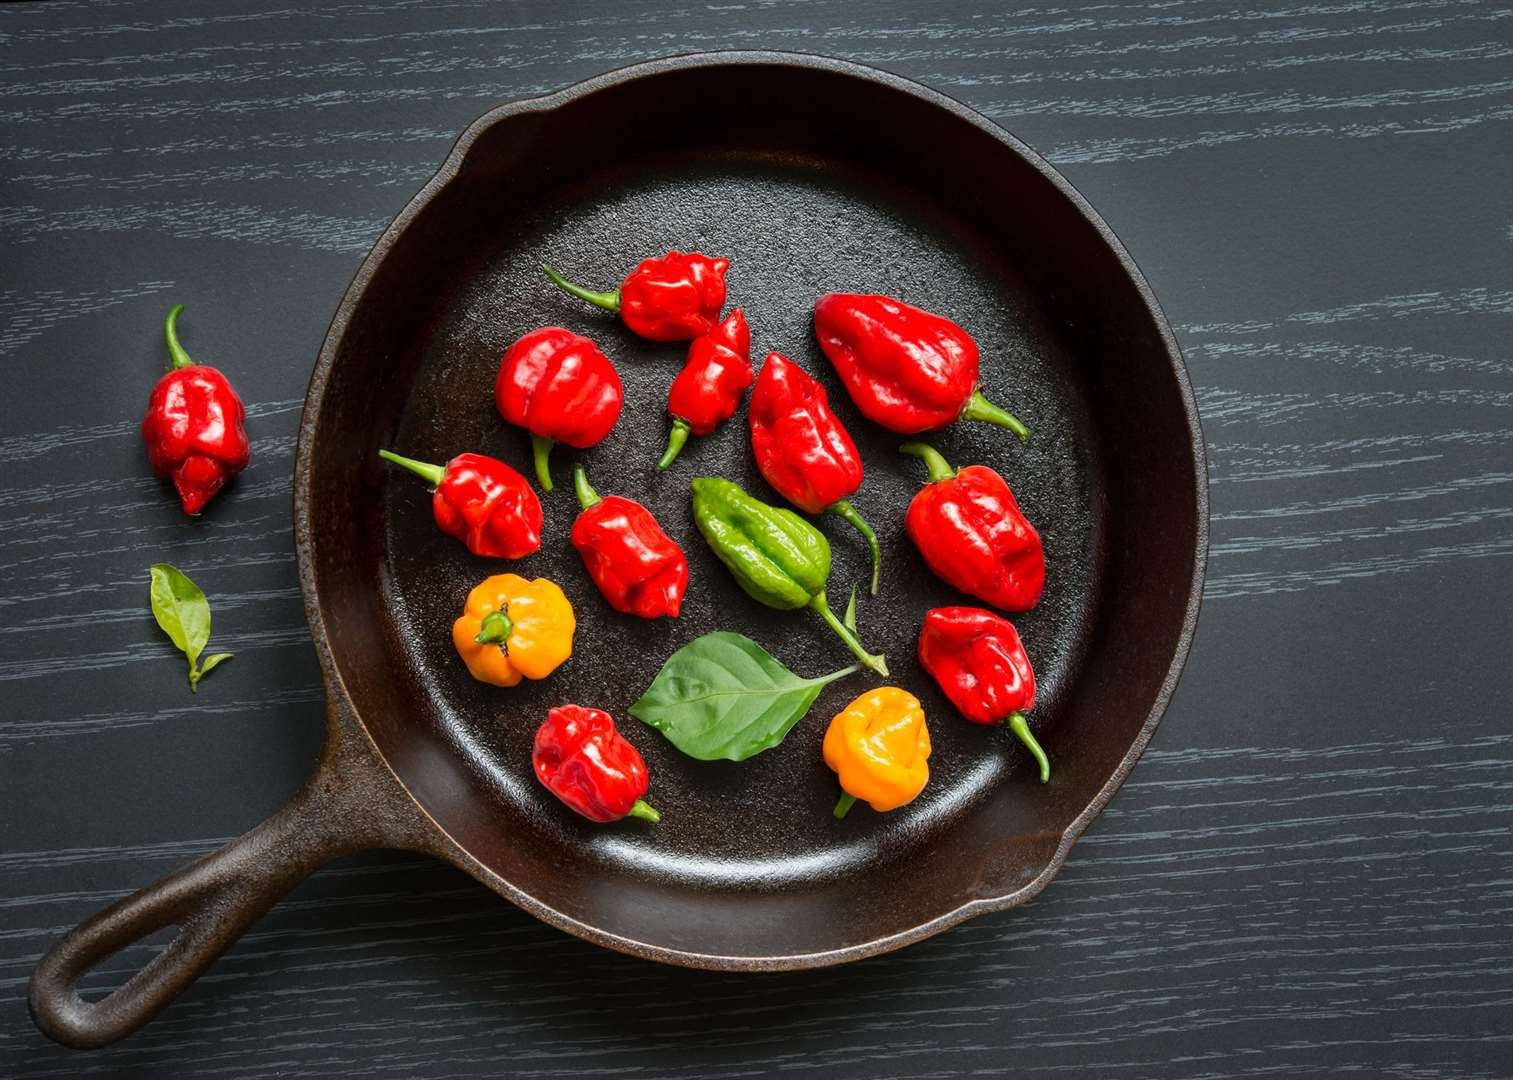 Chilli peppers - stock image (2) (44296764)